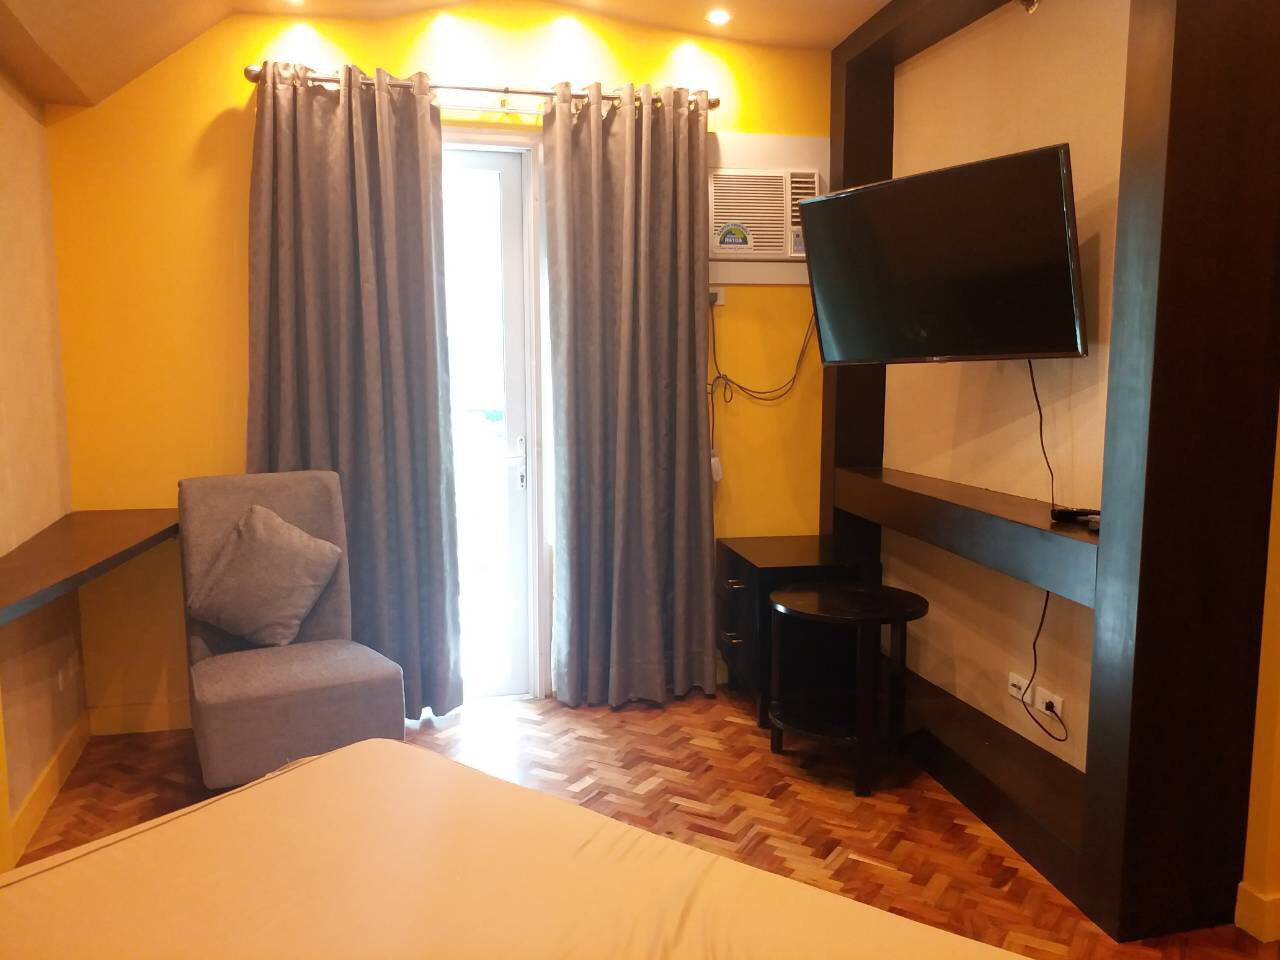 For Rent, Almond, Two Serendra, BGC, Taguig City Bedroom 1